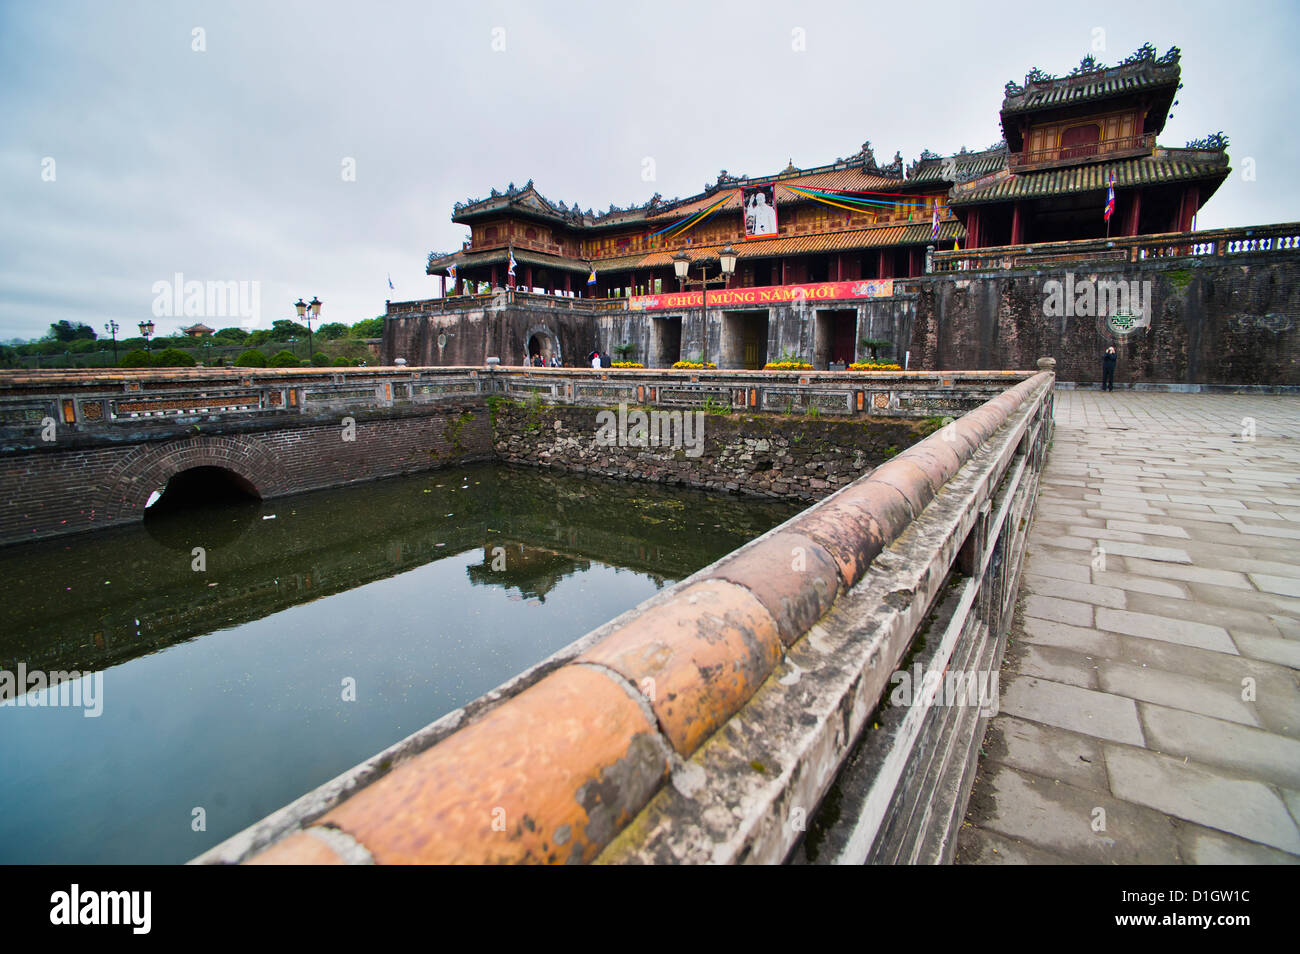 Hue Citadel Gates, The Imperial City, Hue, UNESCO World Heritage Site, Vietnam, Indochina, Southeast Asia, Asia - Stock Image